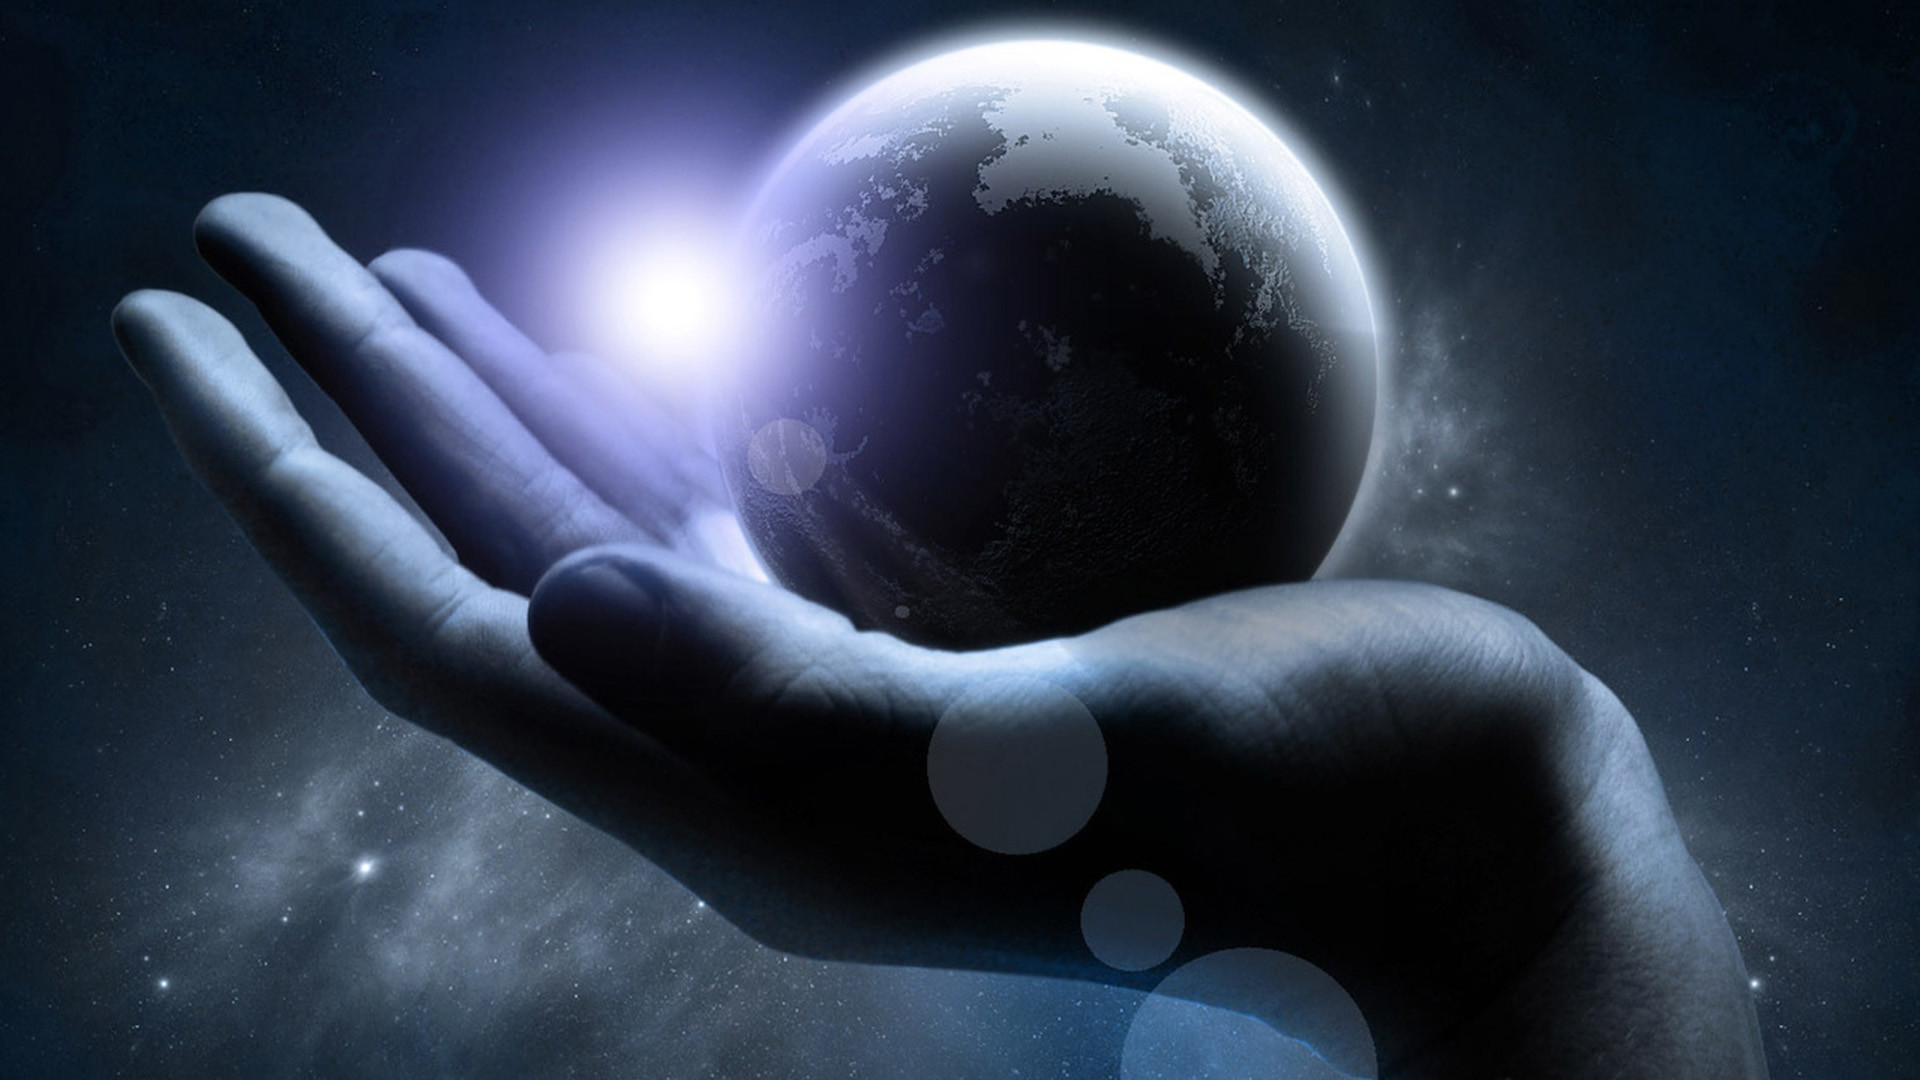 1920x1080 WallpaperUniversity.com :: Alien Hand Holding a Planet in Space .